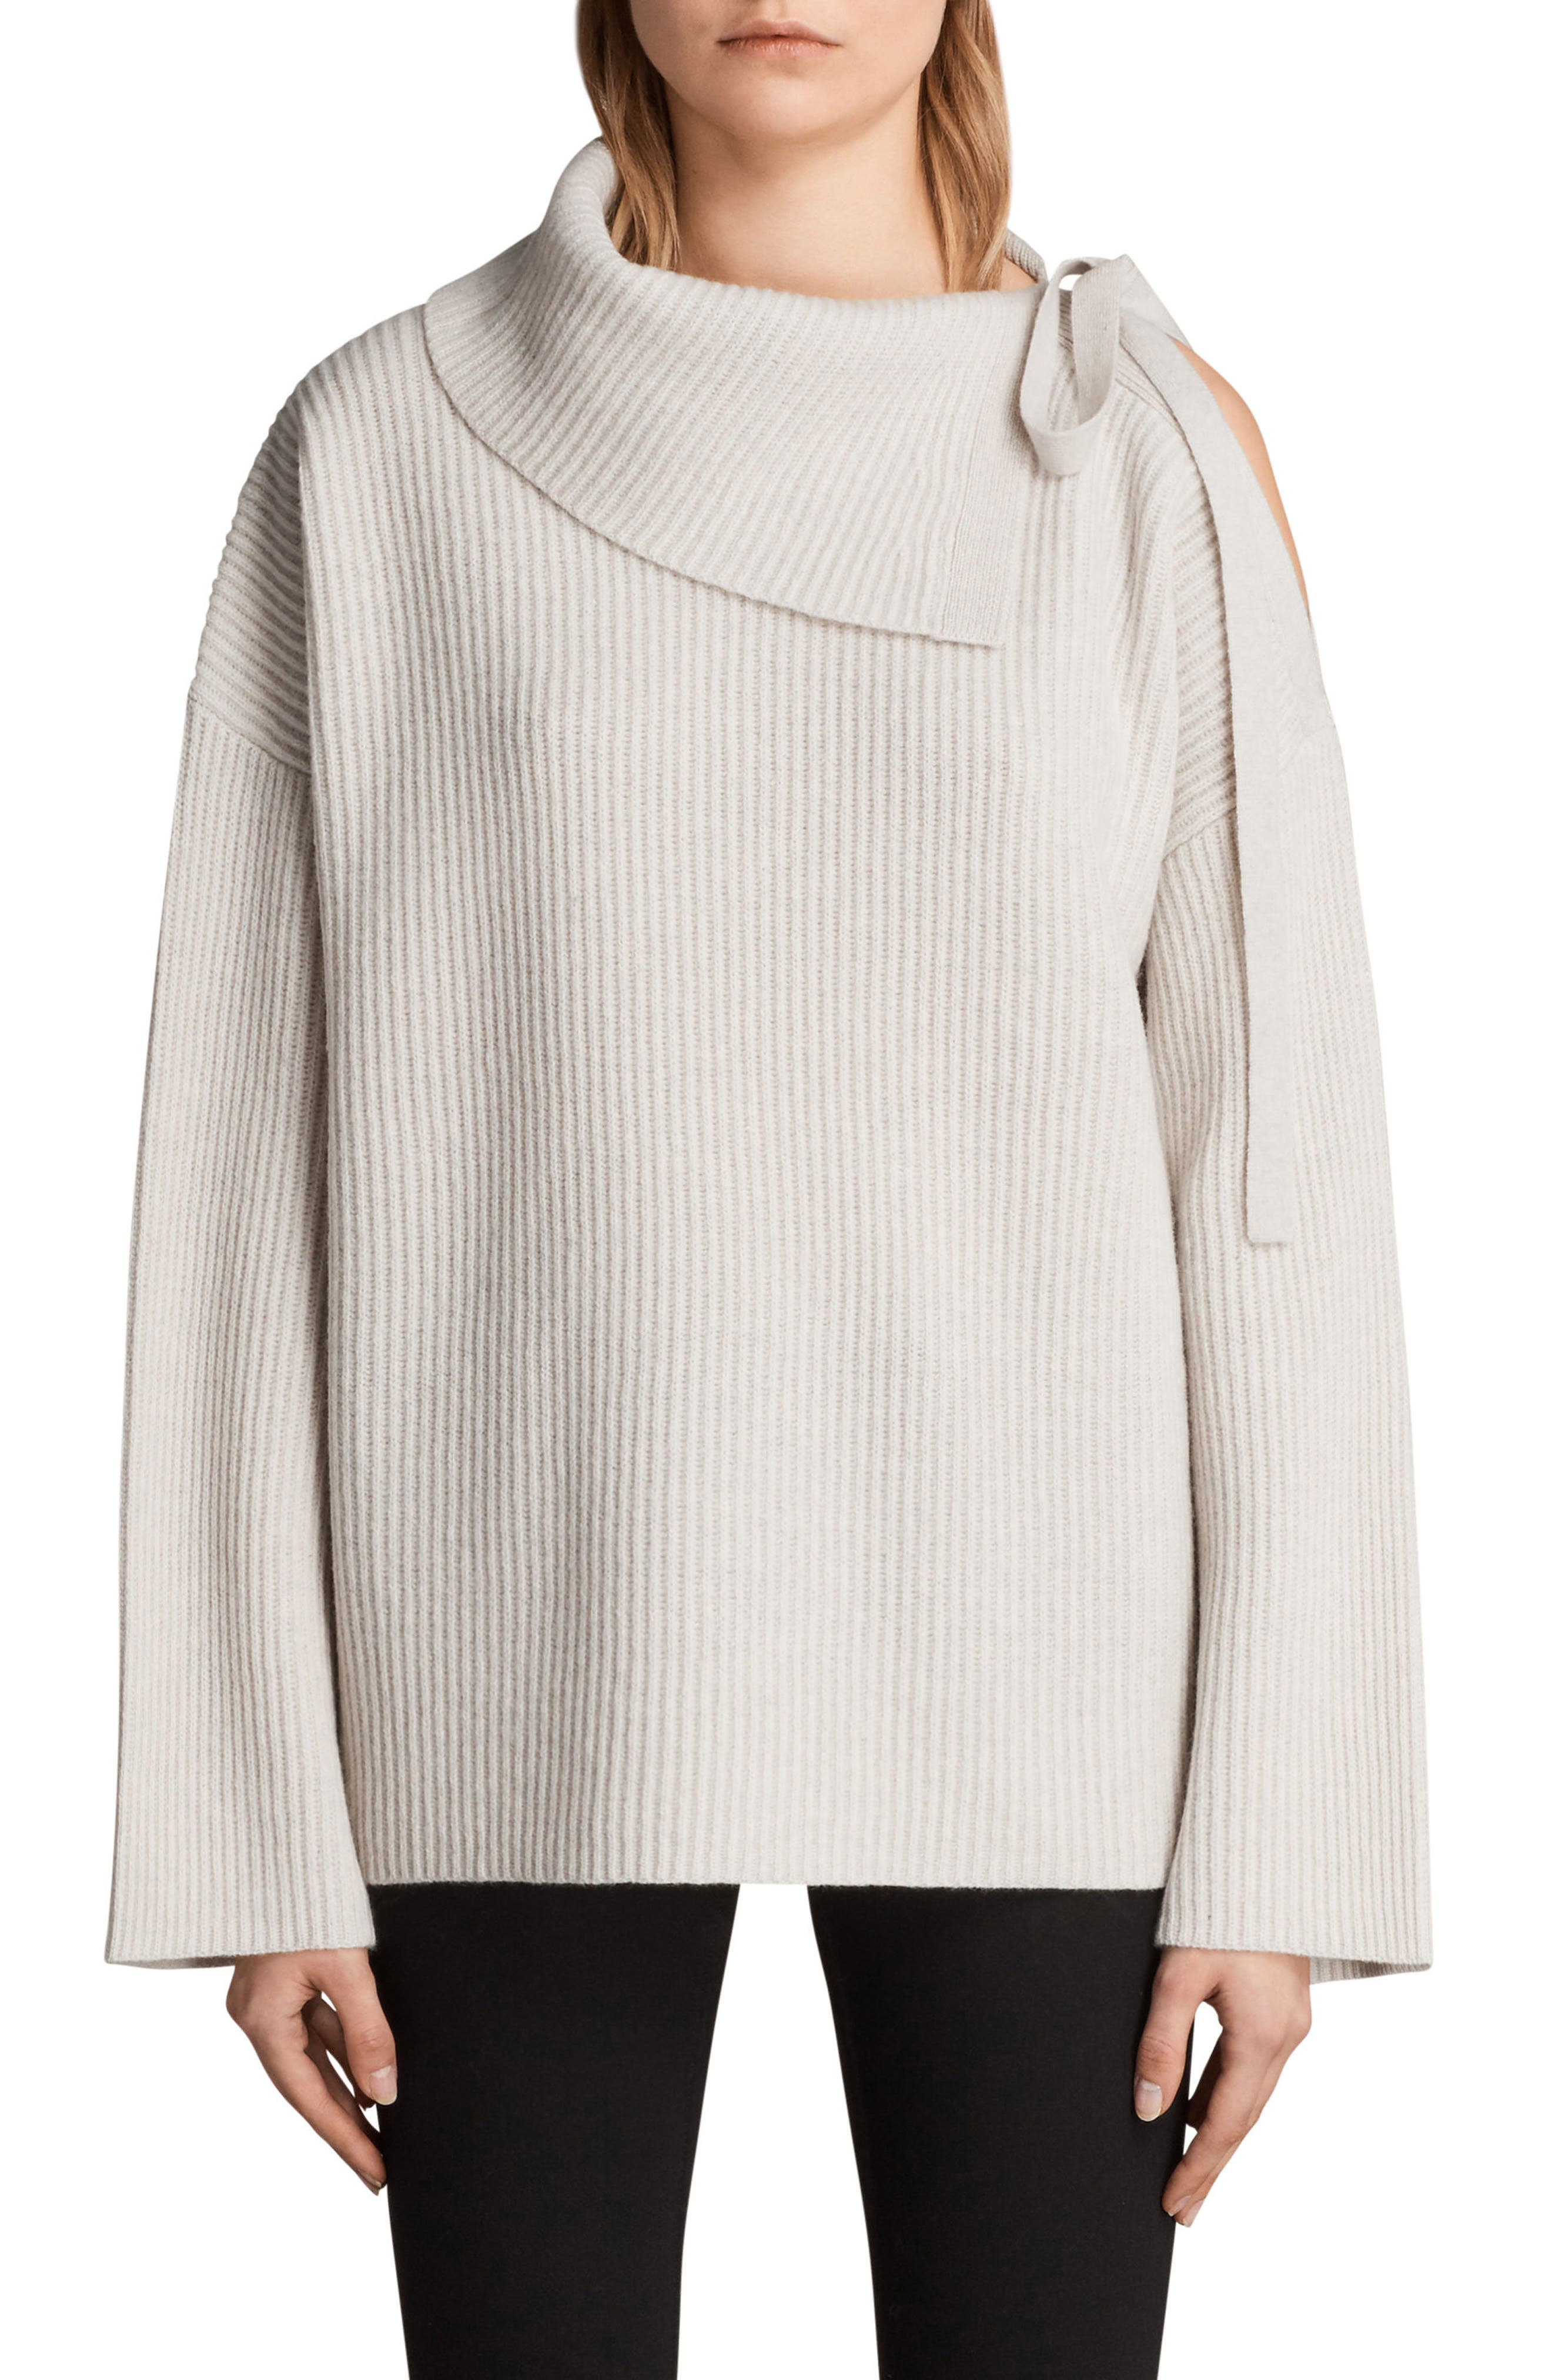 ALLSAINTS,                             Sura Tie Neck Sweater,                             Main thumbnail 1, color,                             252